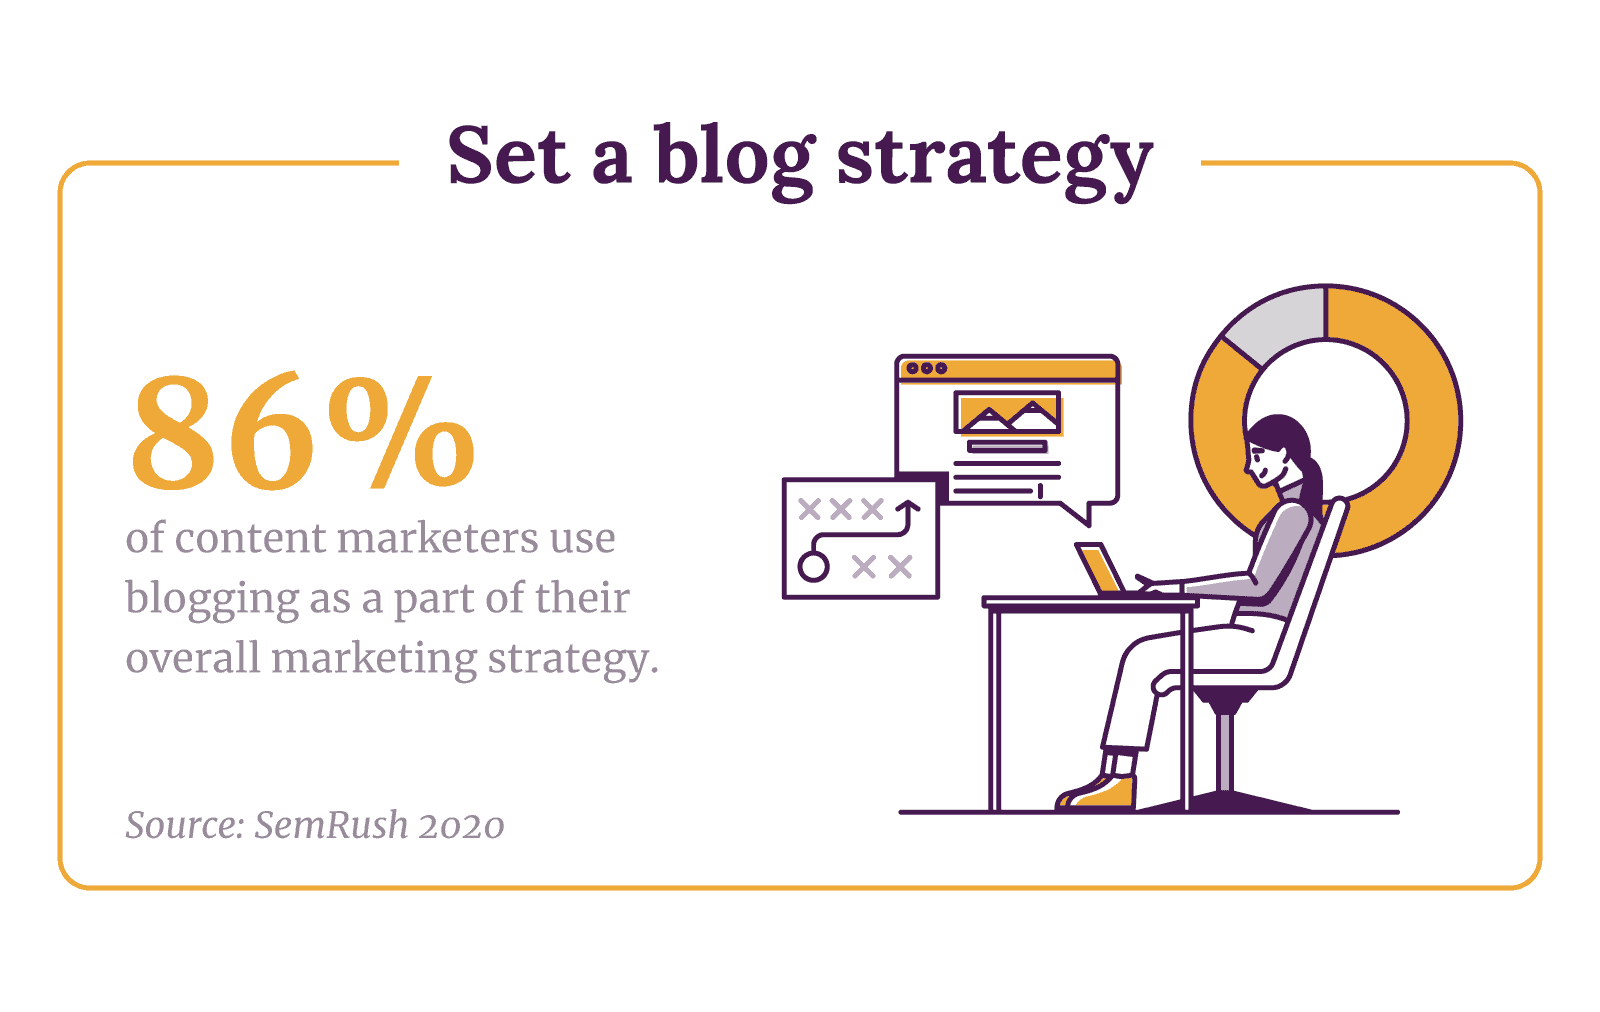 Set a blog strategy. 86% of content marketers use blogging as part of their overall marketing strategy.